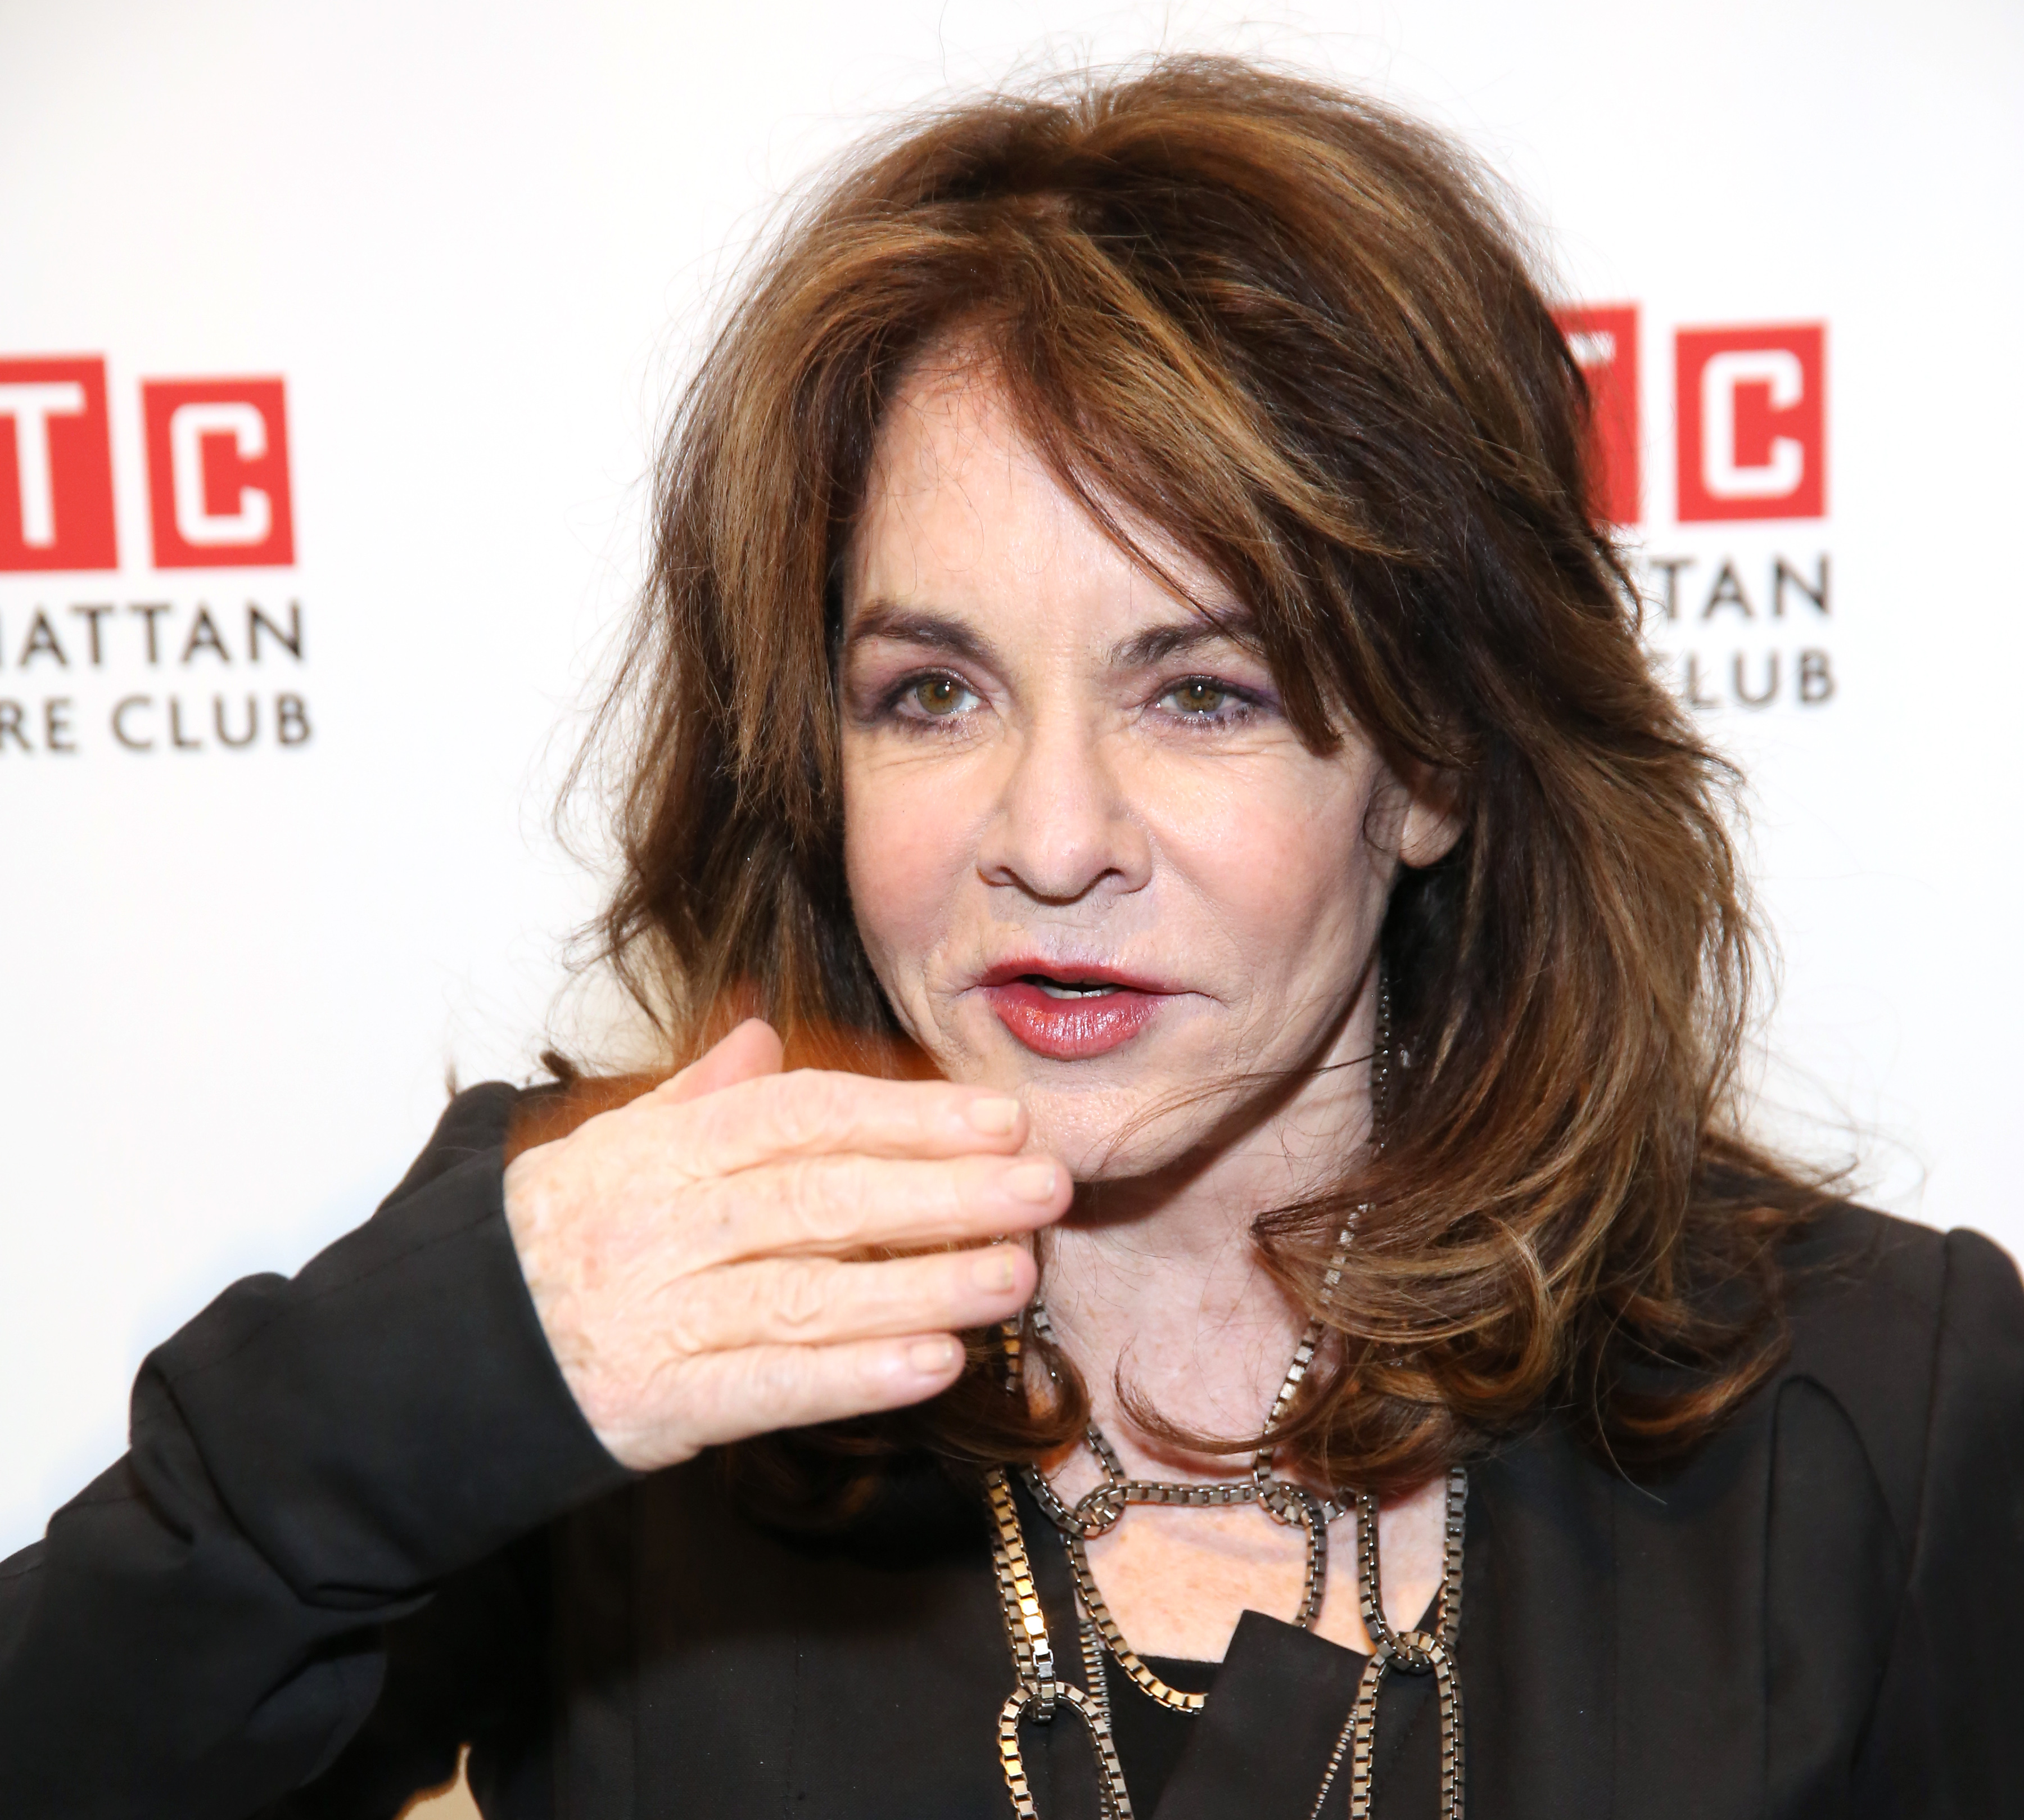 Stockard Channing west wing